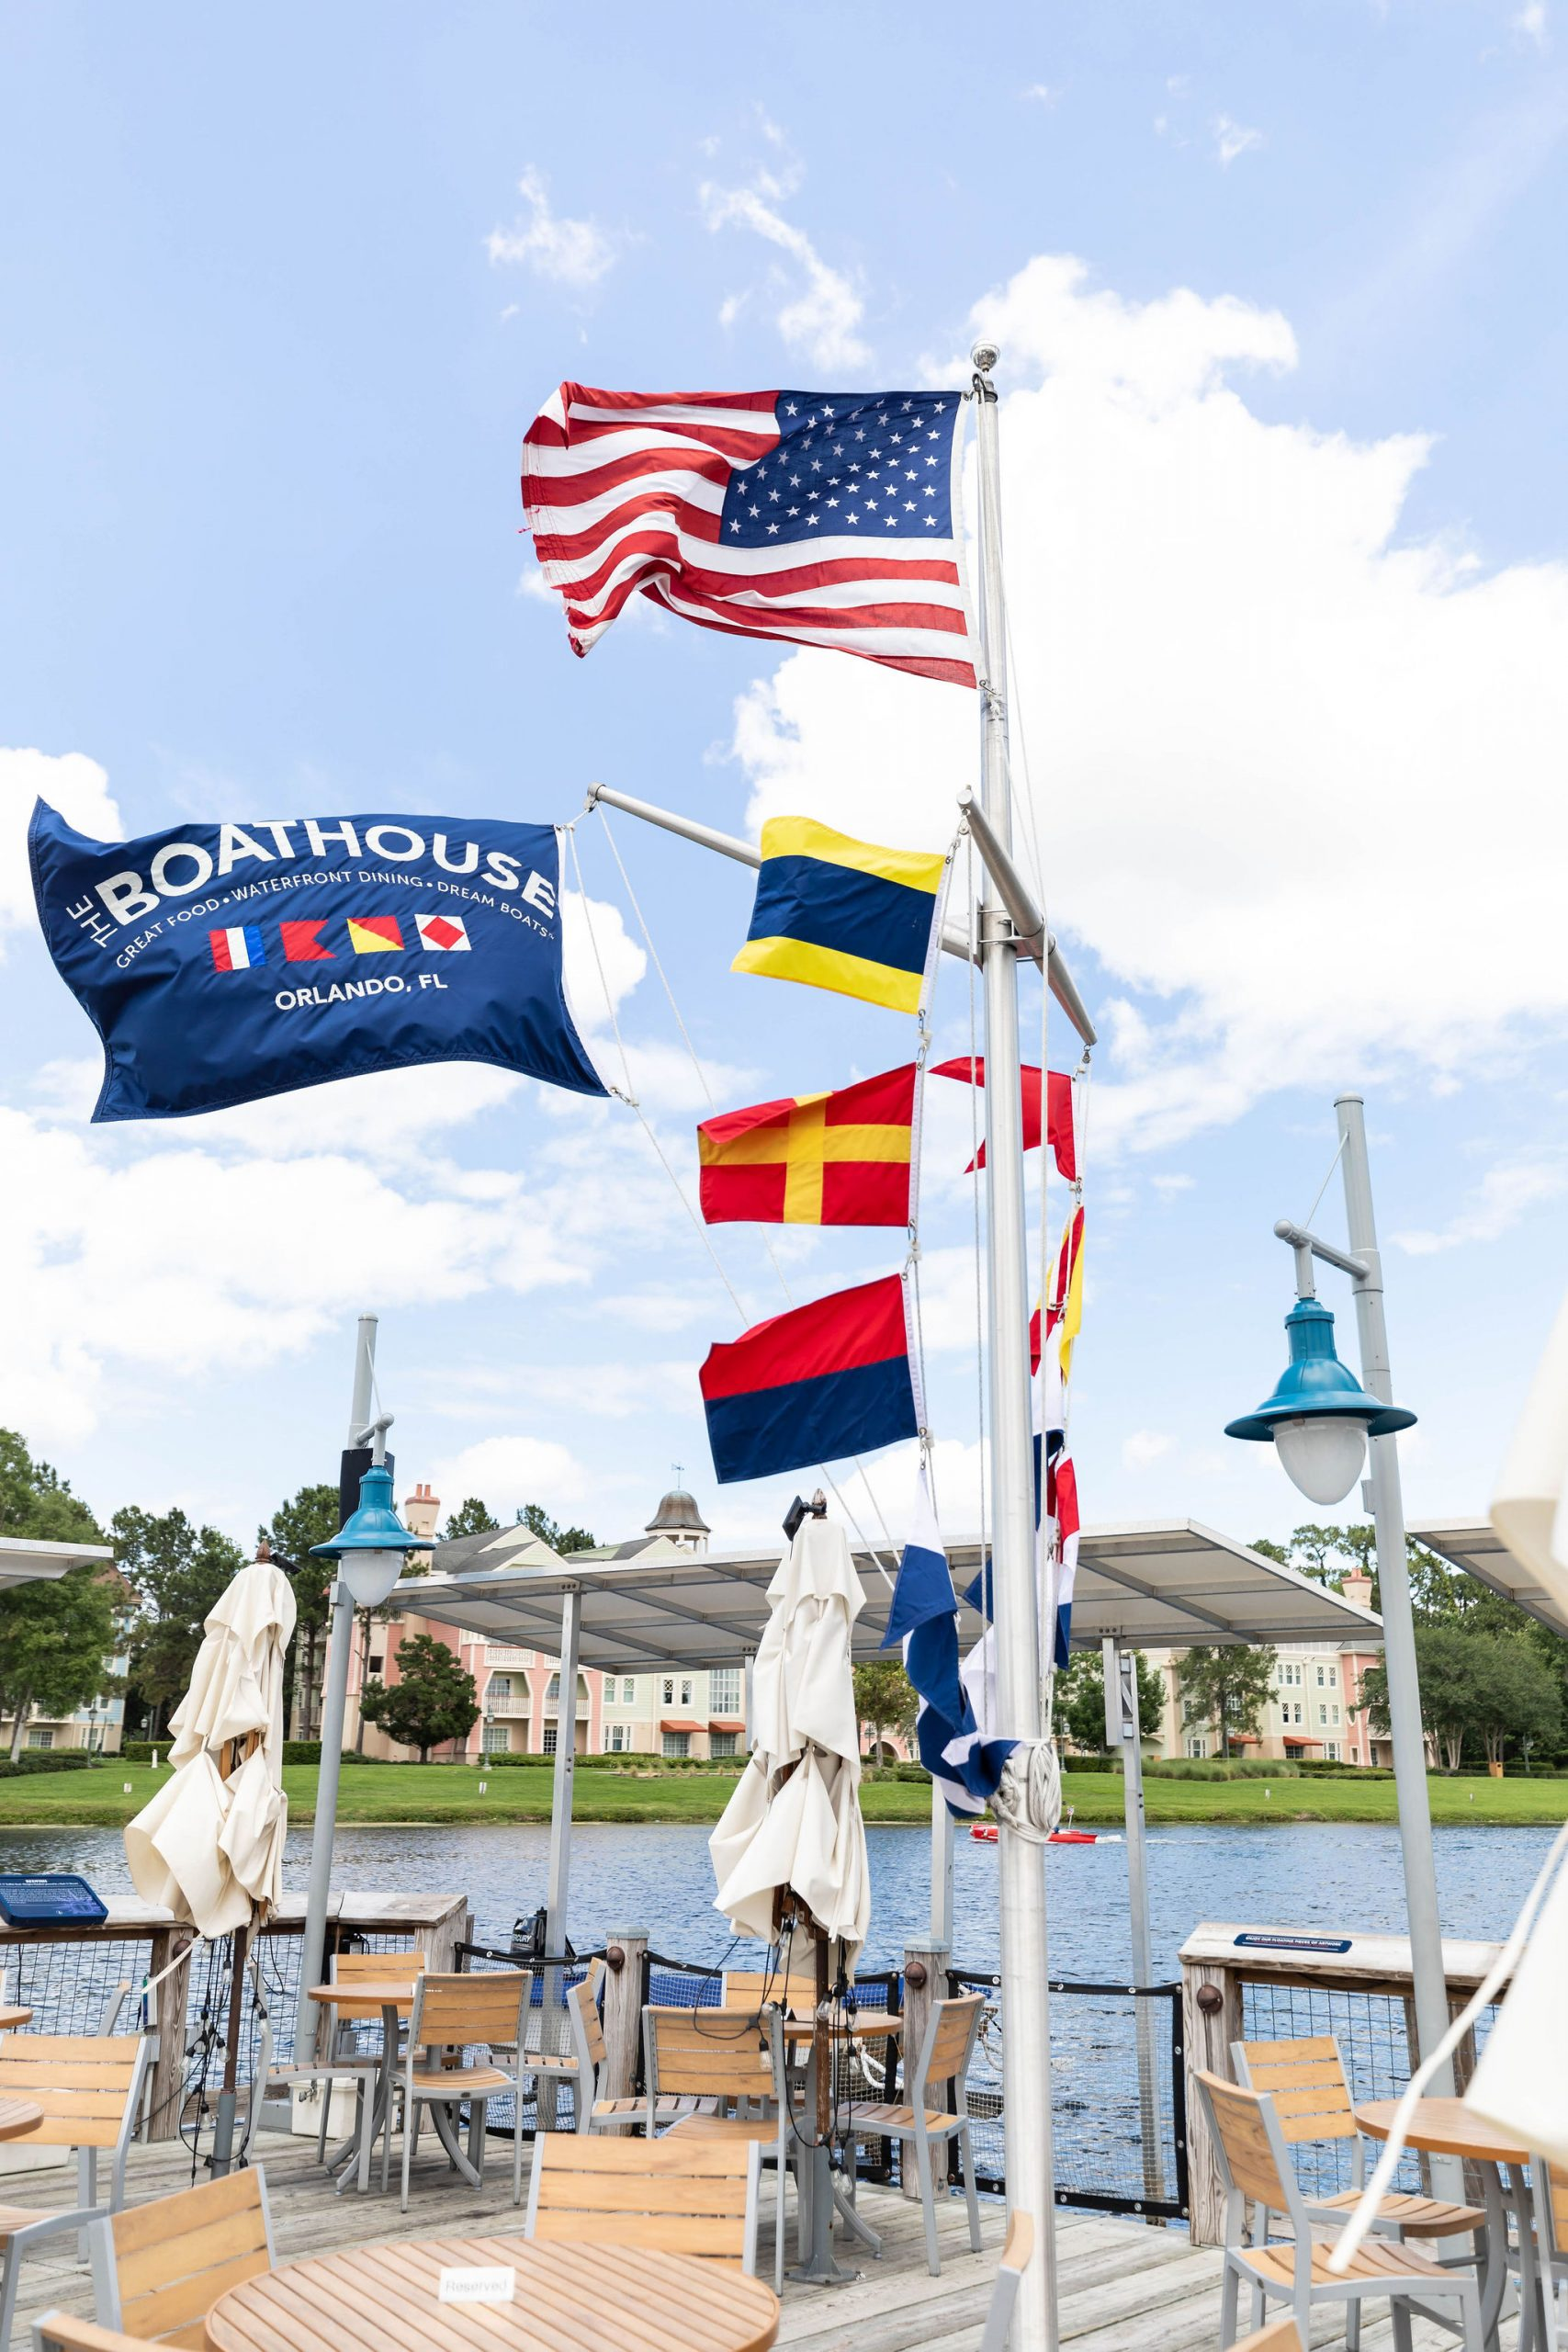 Walt Disney World's Boathouse Restaurant and Nautical Flags Striped Cabanas Along the Shore Photographed by Luxury Travel Writer Annie Fairfax